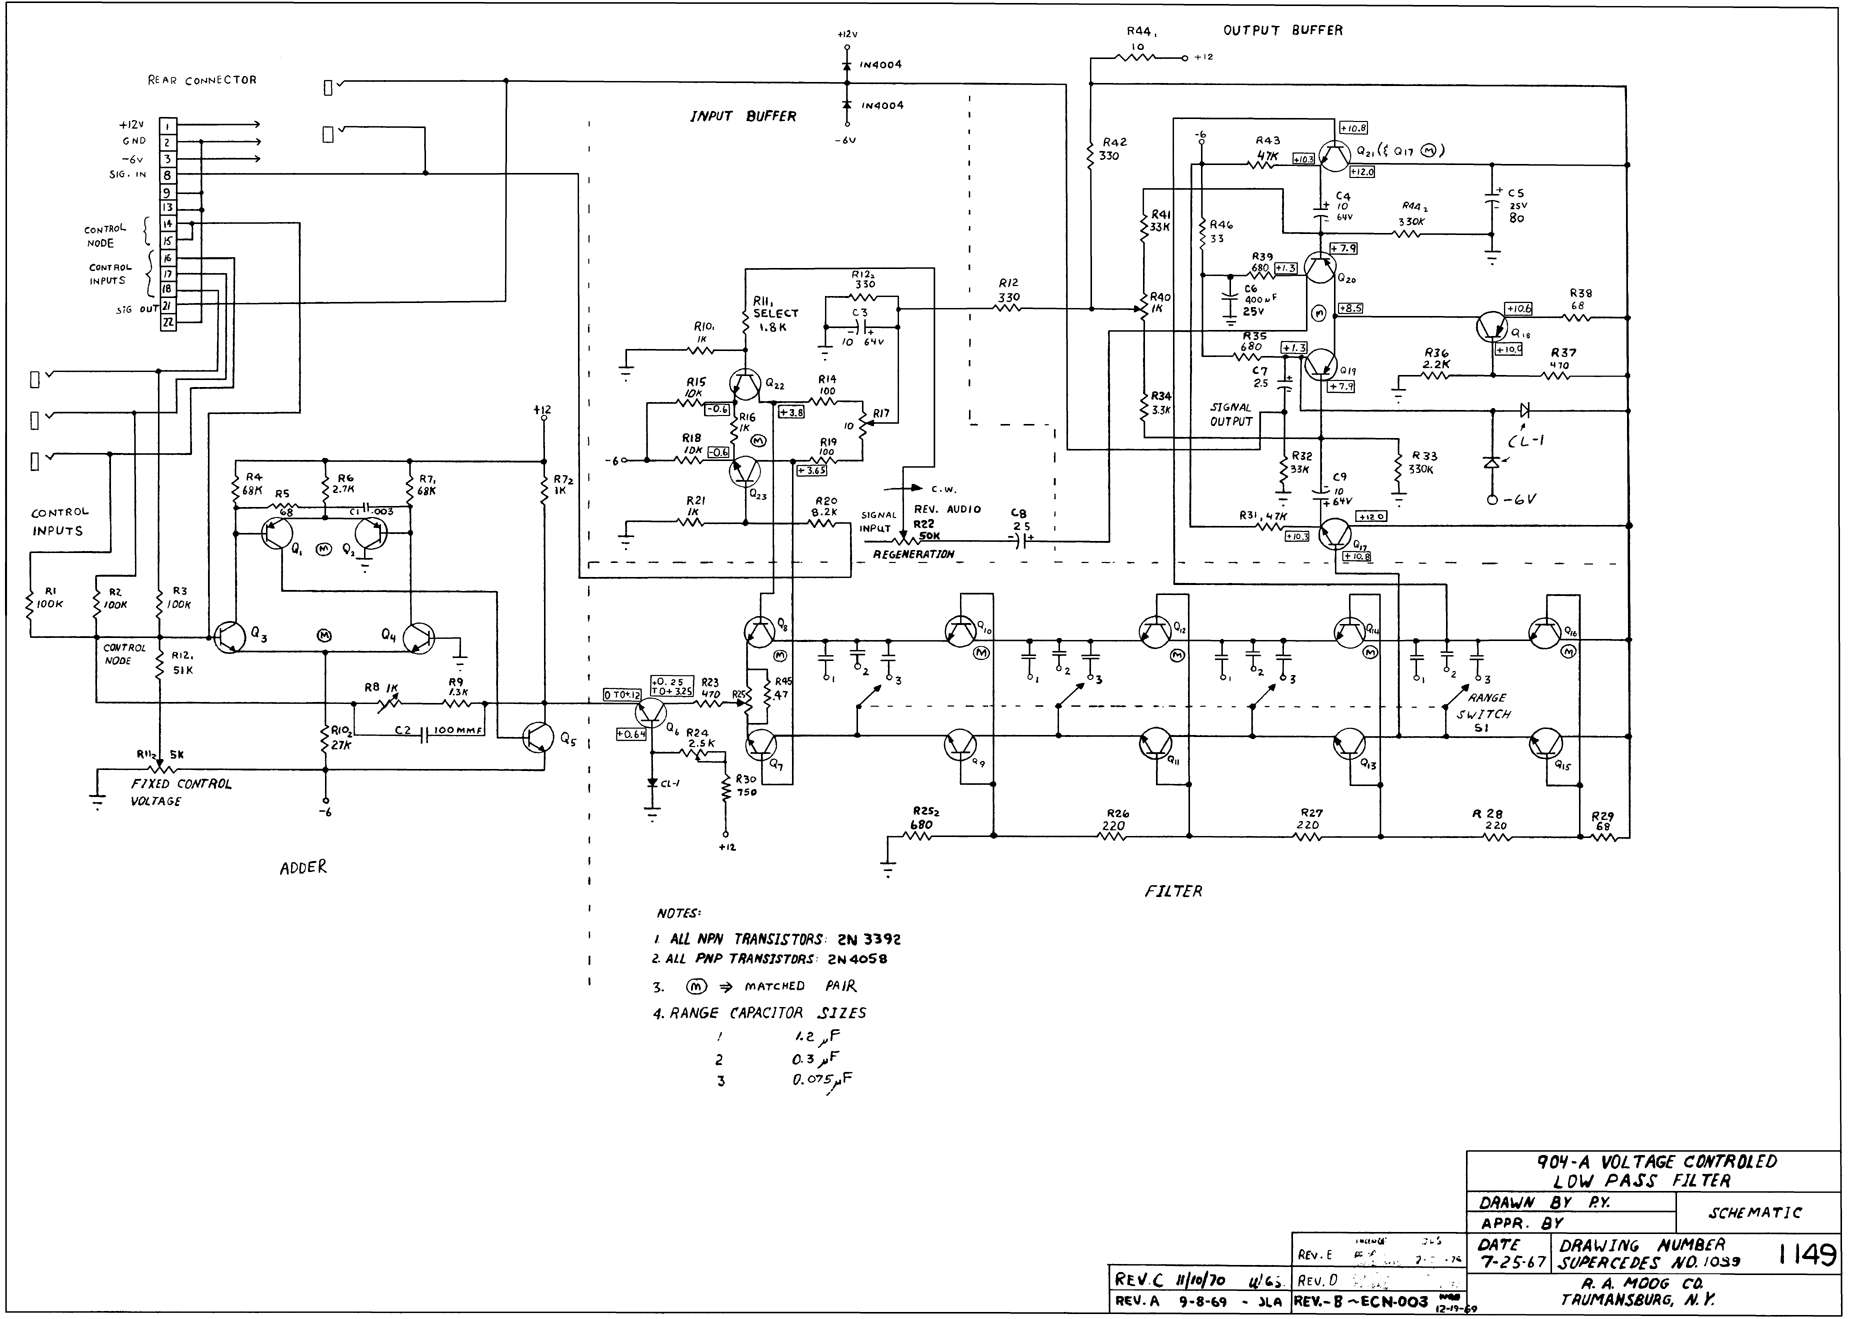 synthesizer schematics user and service manuals rh hylander com User Guide Template User Guide Icon